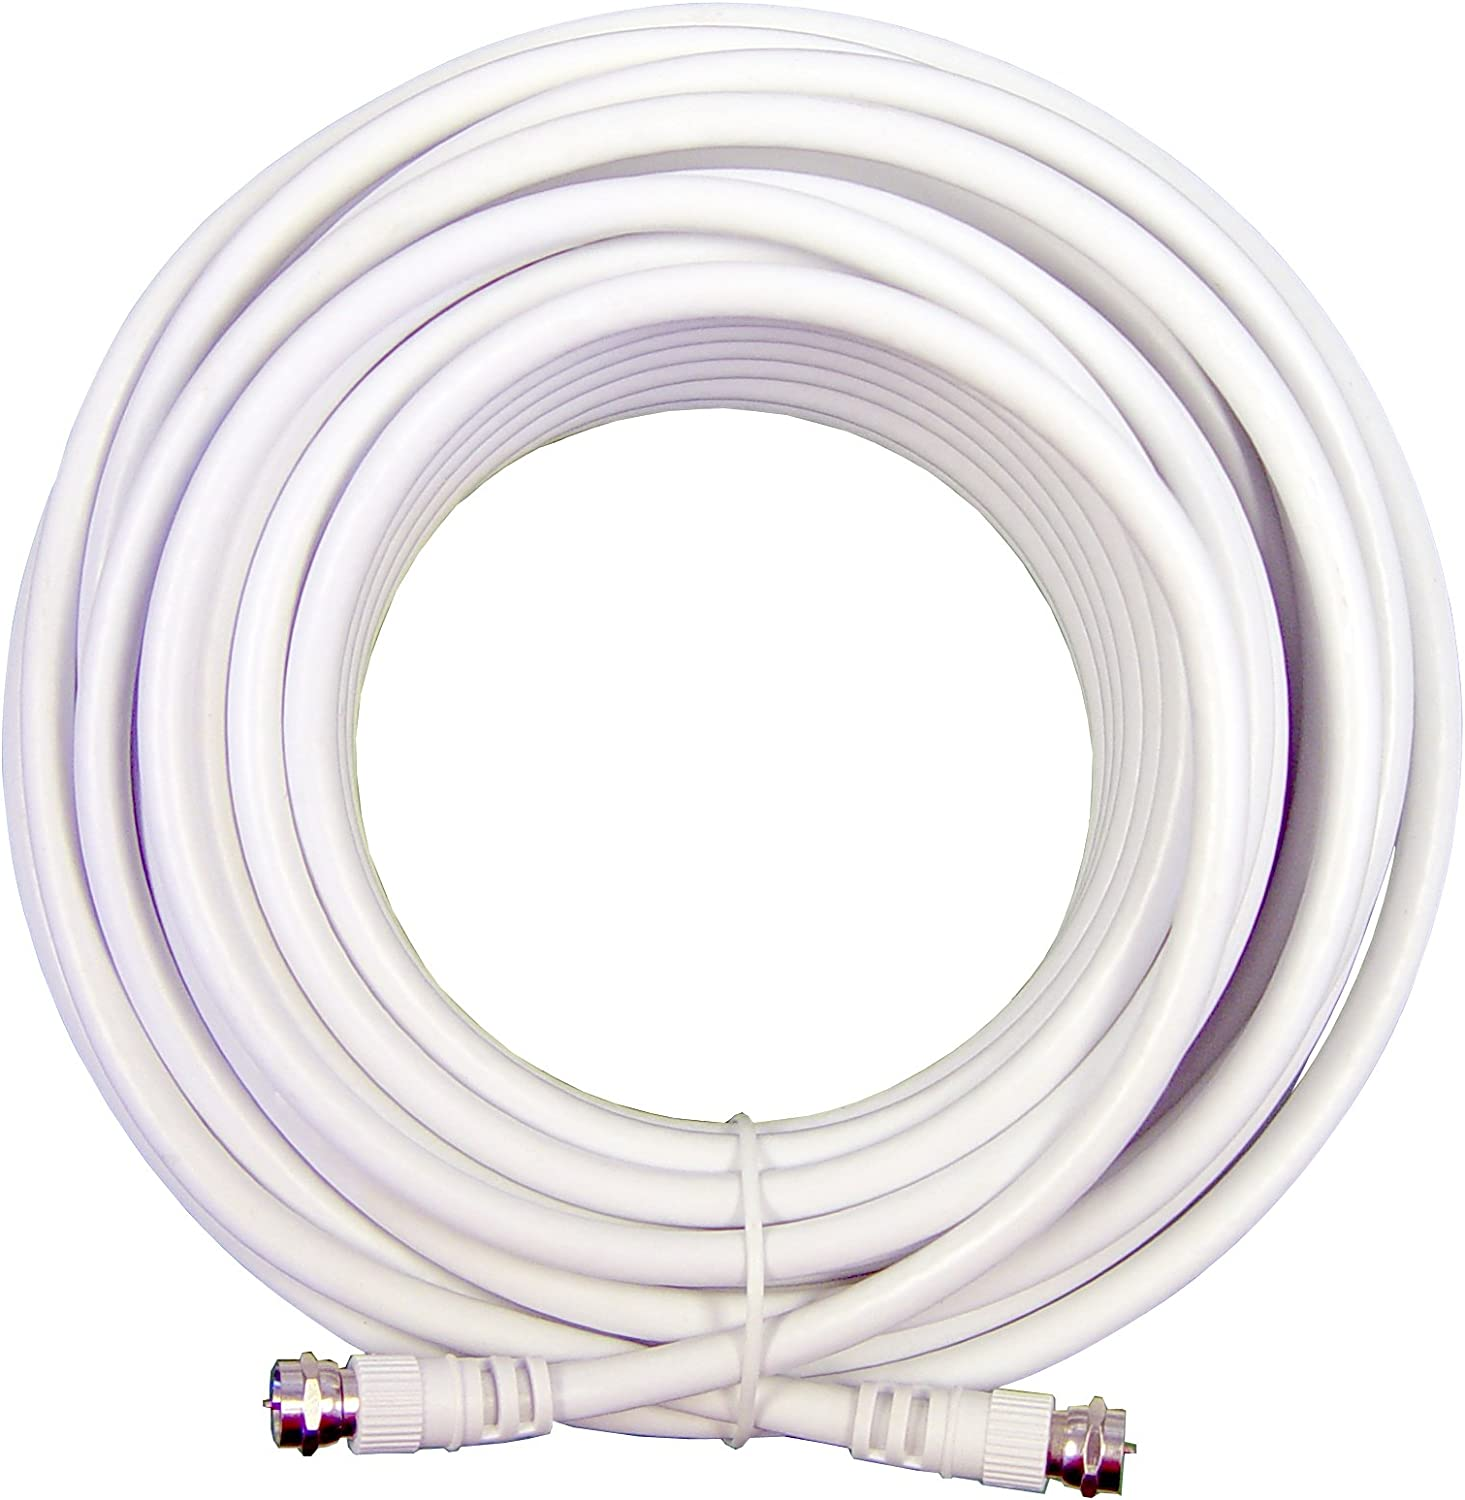 Wilson Electronics 20 ft. White RG6 Low Loss Coax Cable (F-Male to F-Male)